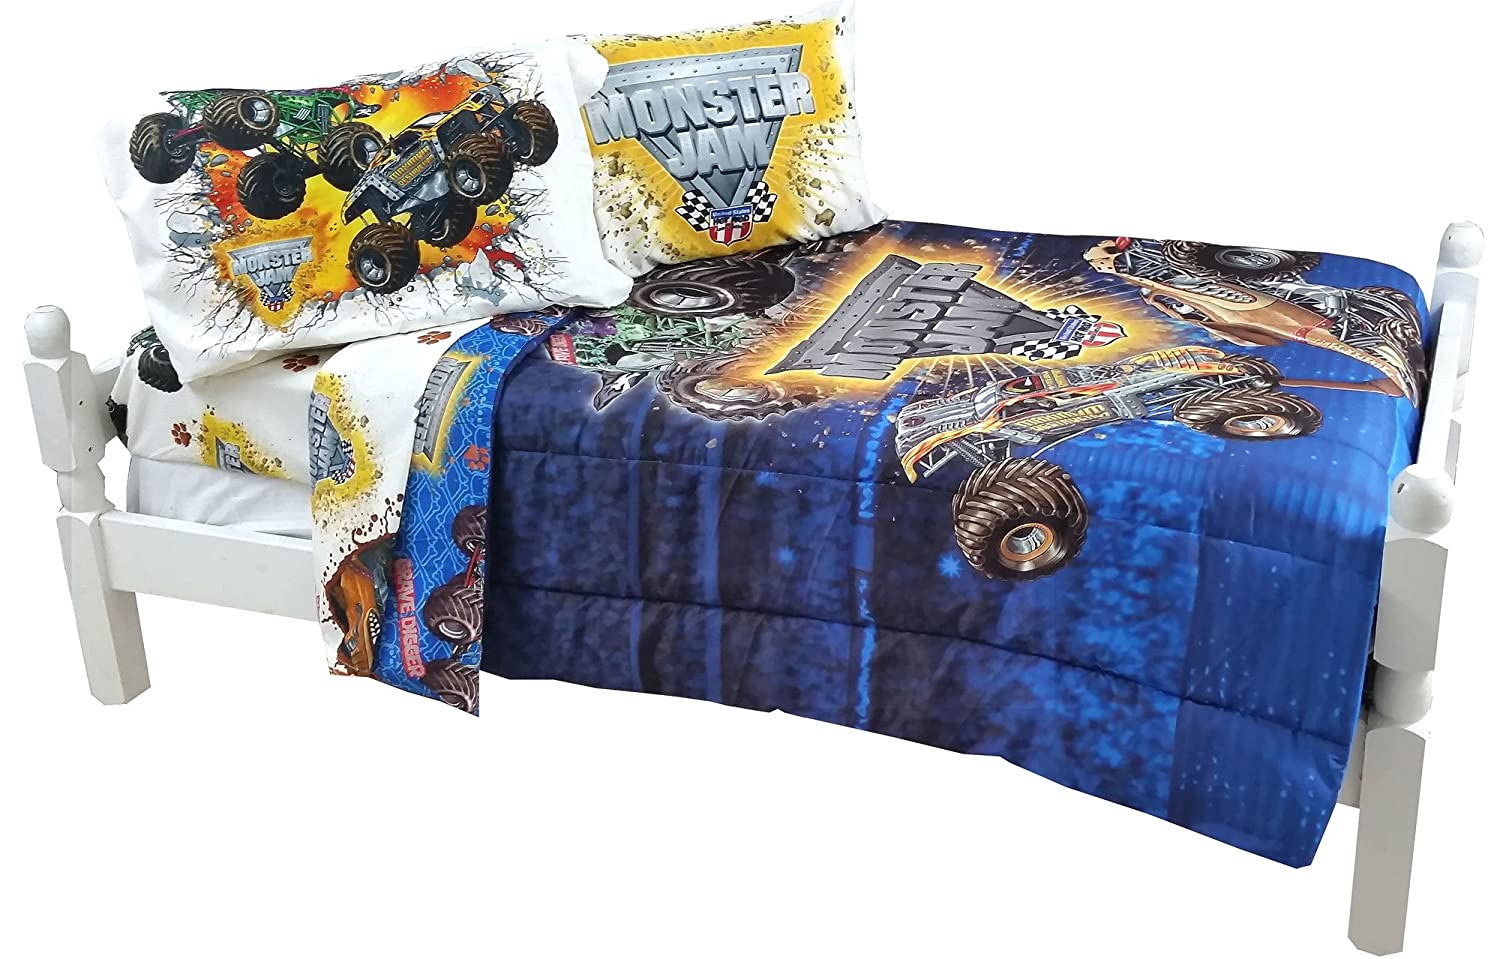 amazoncom 5pc monster jam full bedding set grave digger maximum destruction comforter and sheet set home u0026 kitchen